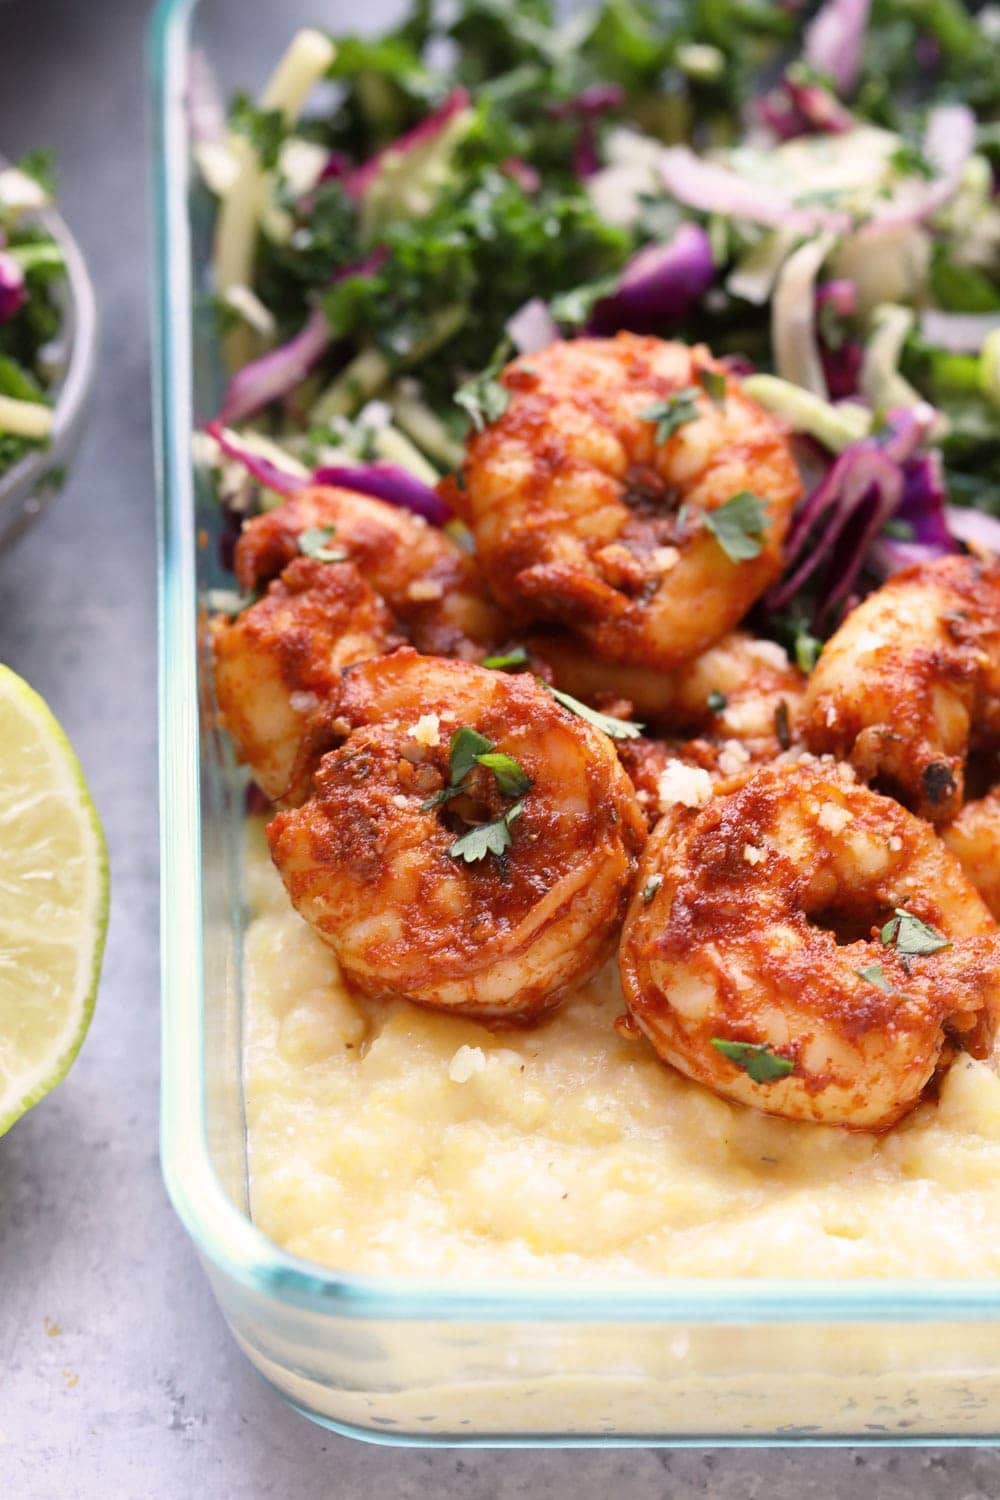 Cajun Shrimp and Grits in a meal prep container